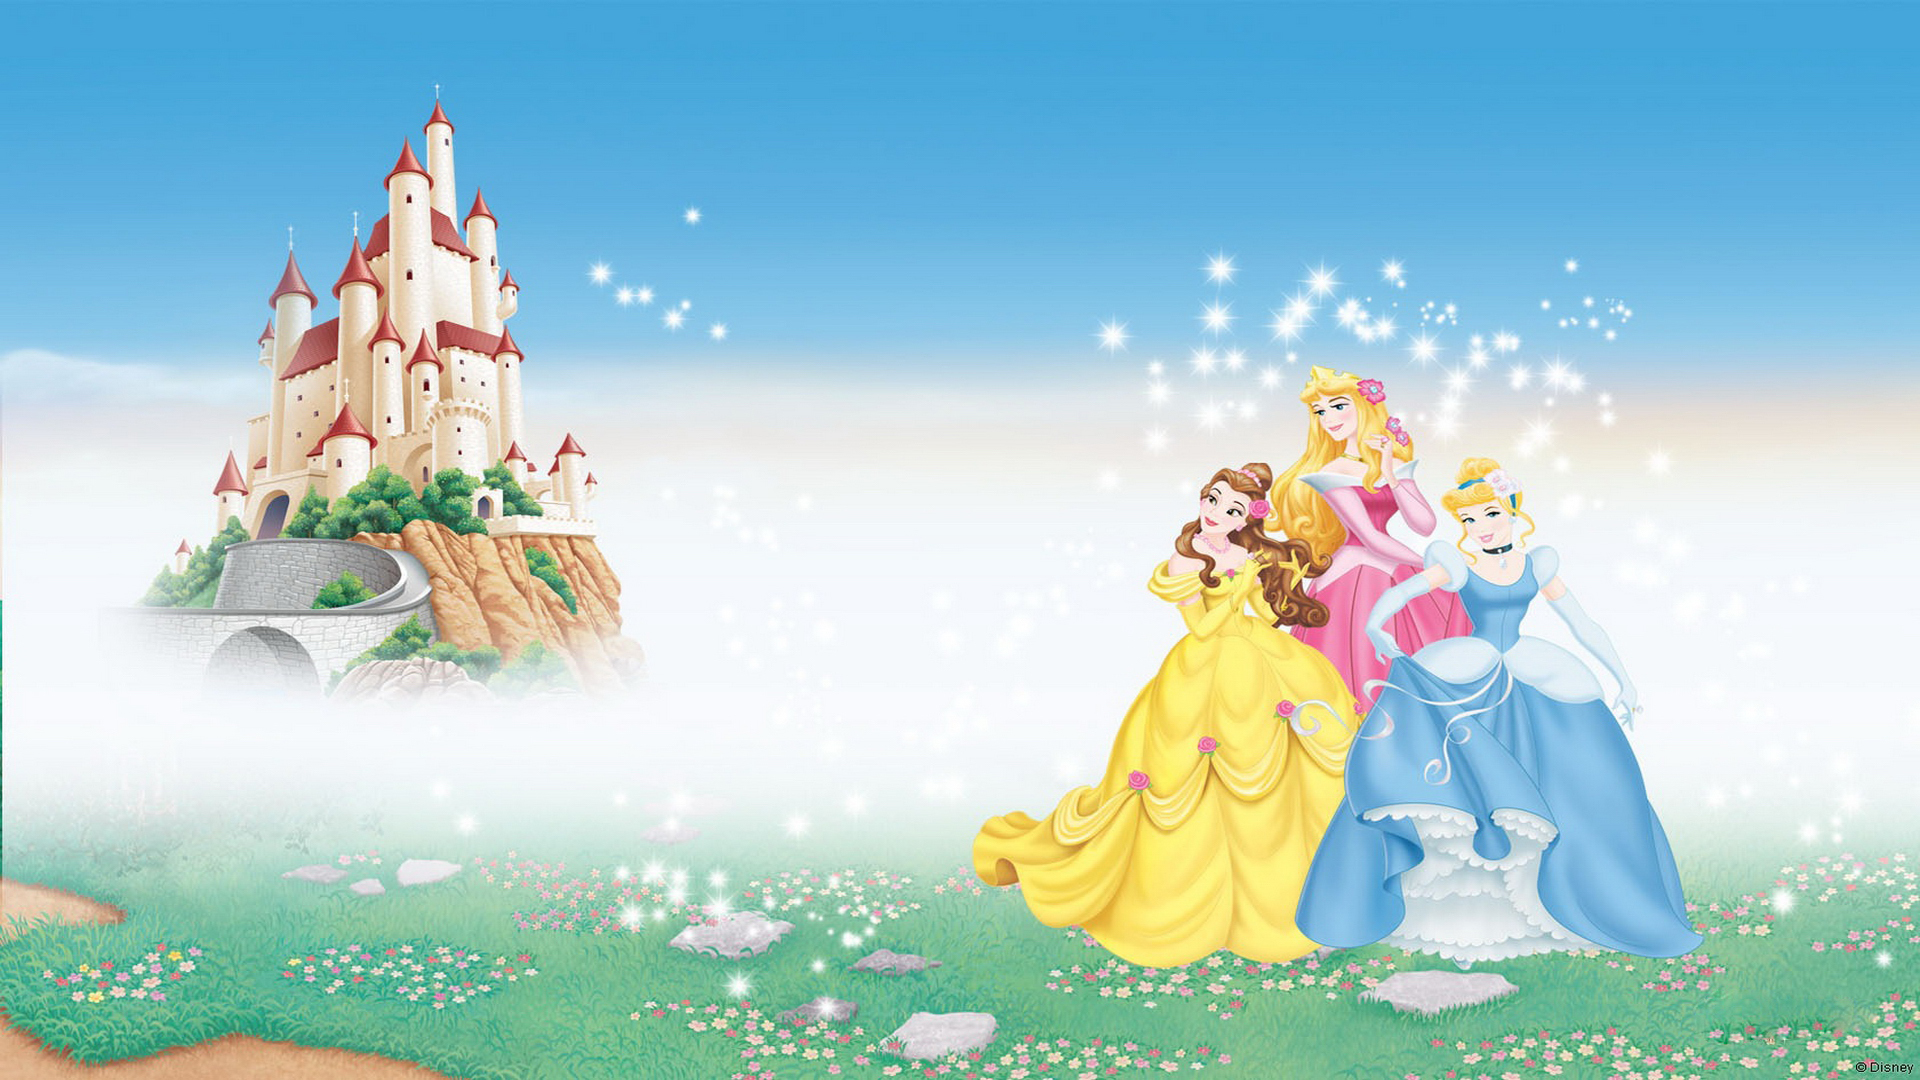 Wallpapers Cars Disney Hd Disney Princess Full Hd Wallpaper Pixelstalk Net